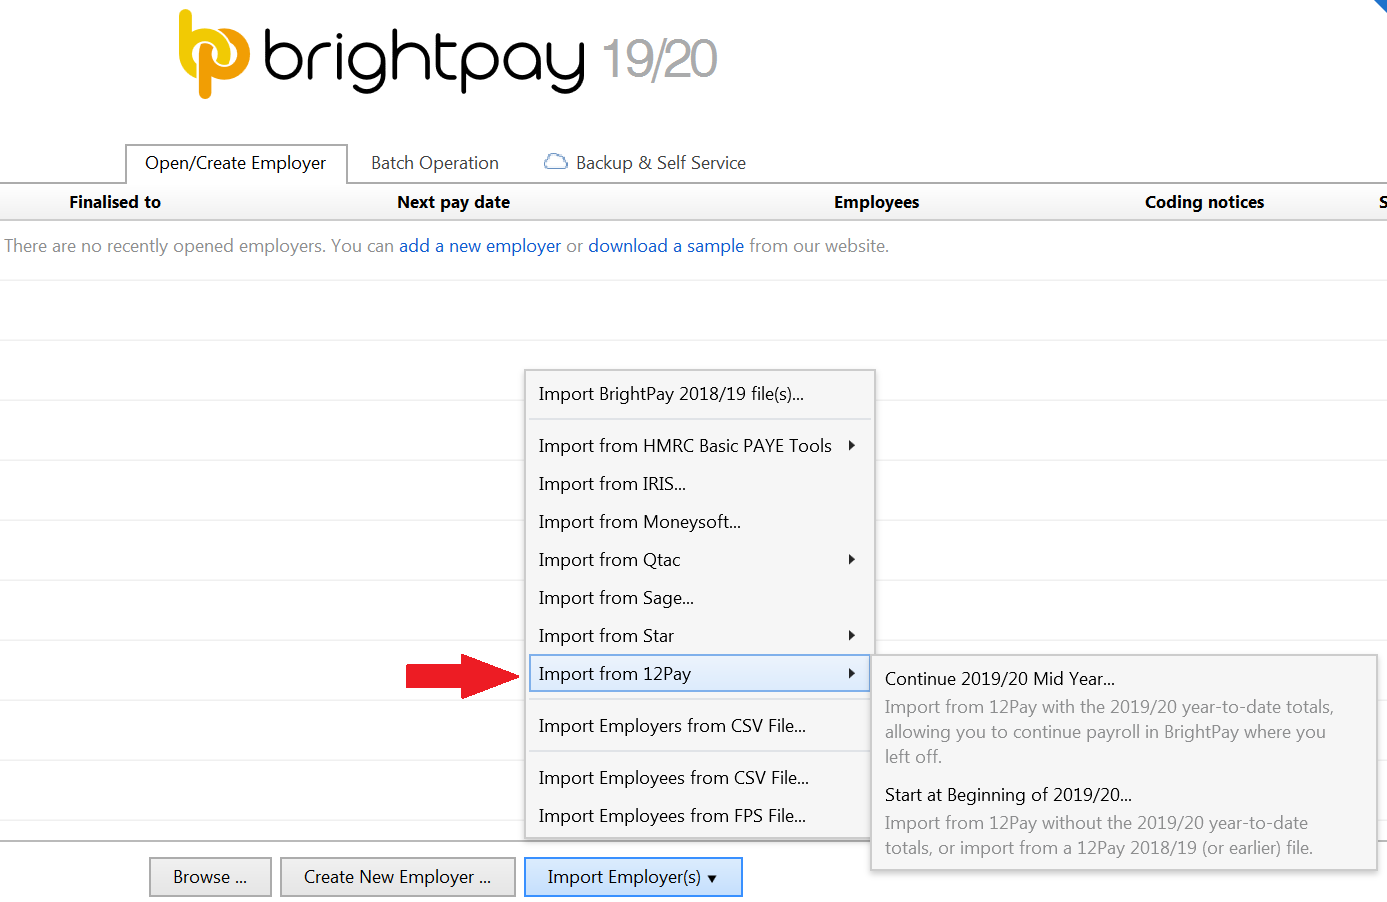 Importing from 12Pay - BrightPay Documentation